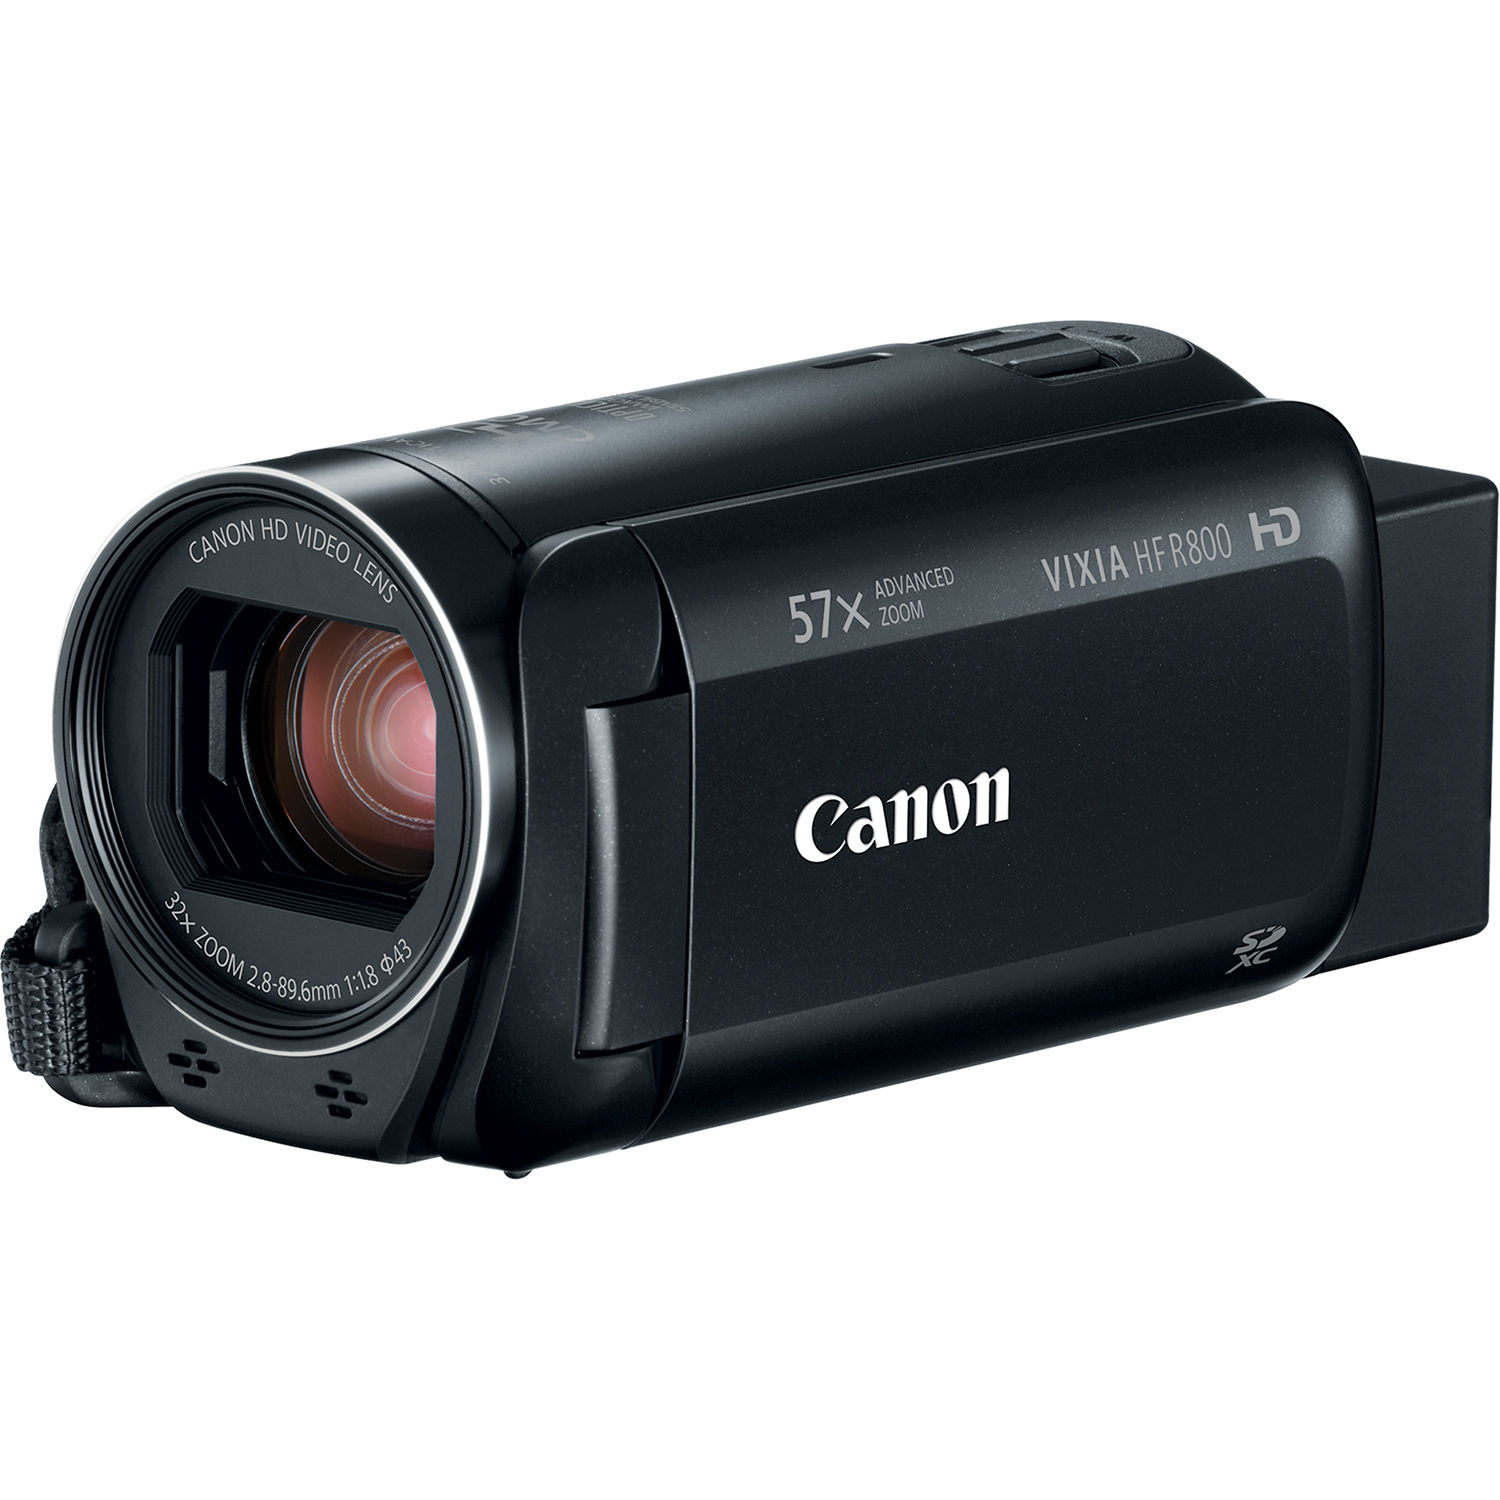 Canon Vixia Hf R800 Camcorder Black 1960c002 B H Photo Video